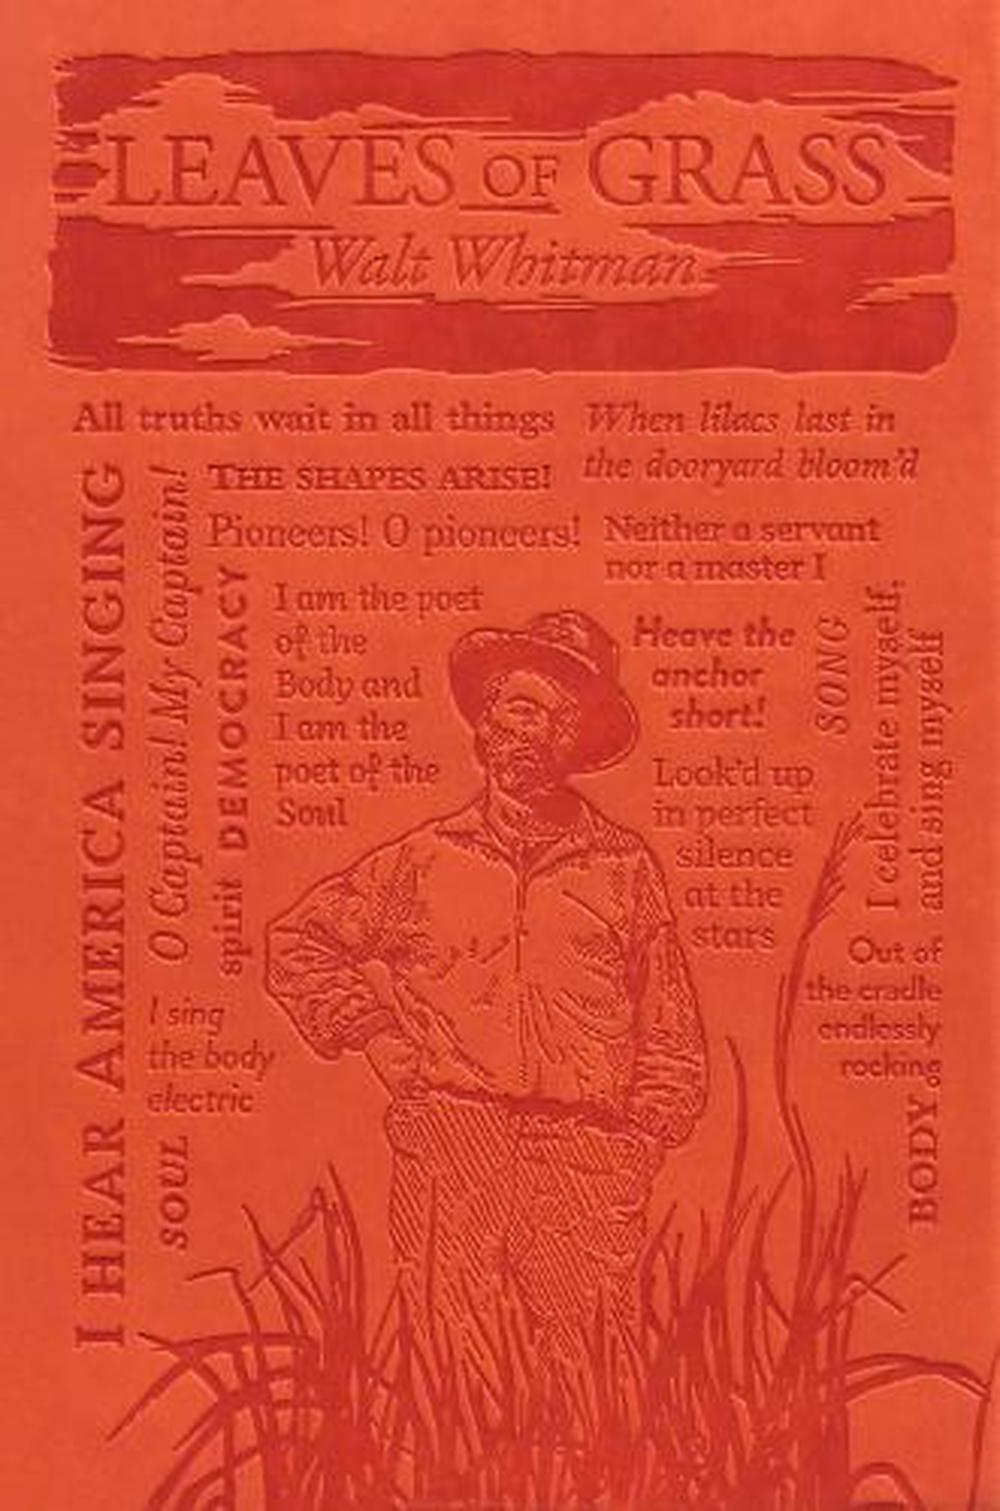 an analysis of the leaves of grass by whitman Librivox recording of leaves of grass, by walt whitman read in english by librivox volunteers american poet walt whitman's leaves of grass, is a collection.